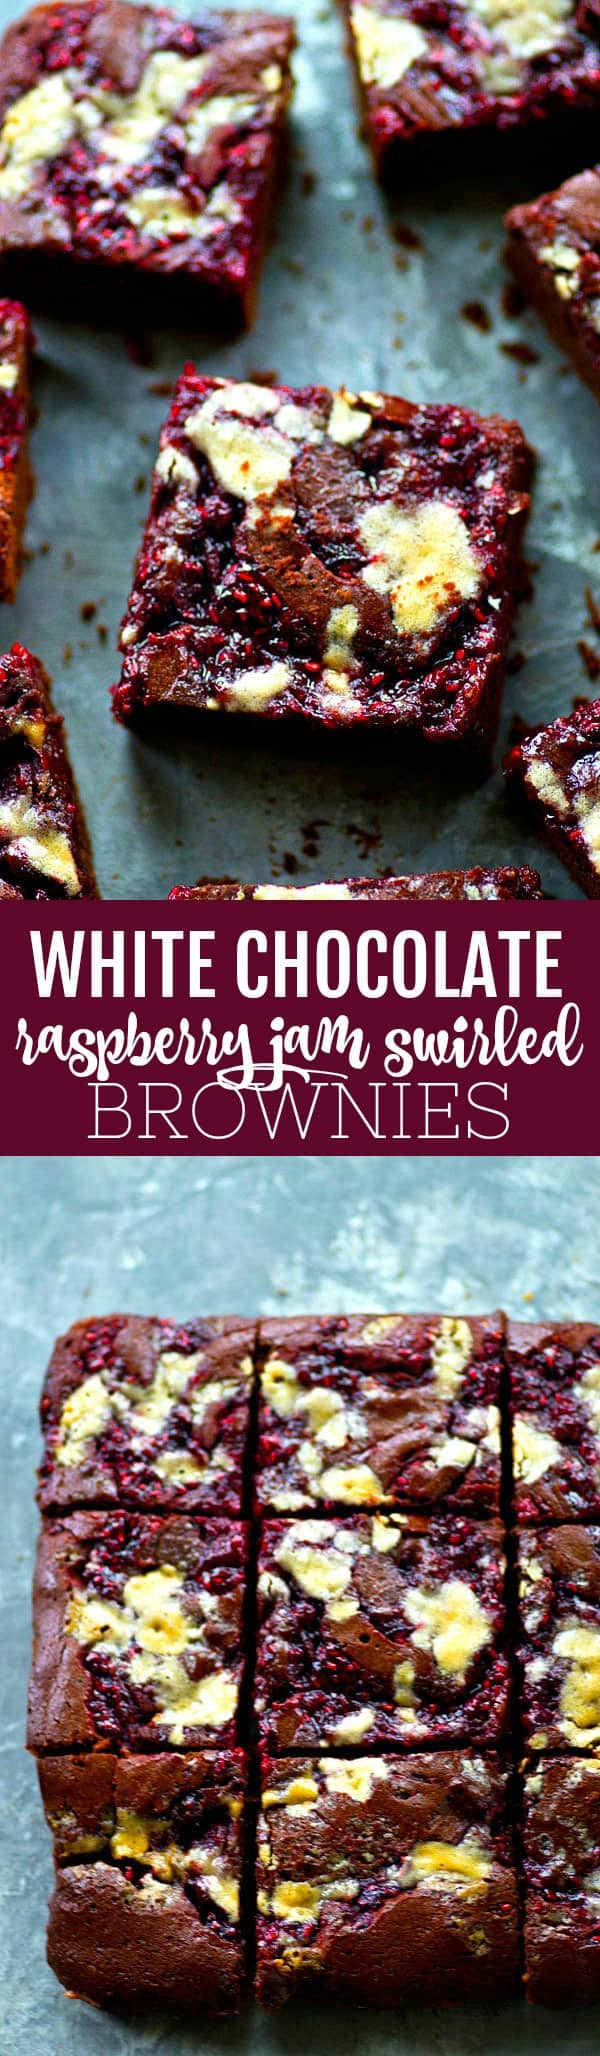 Ultra fudgy raspberry jam swirled brownies are swirled with a homemade raspberry jam and tons of white chocolate for the ultimate romantic brownie!